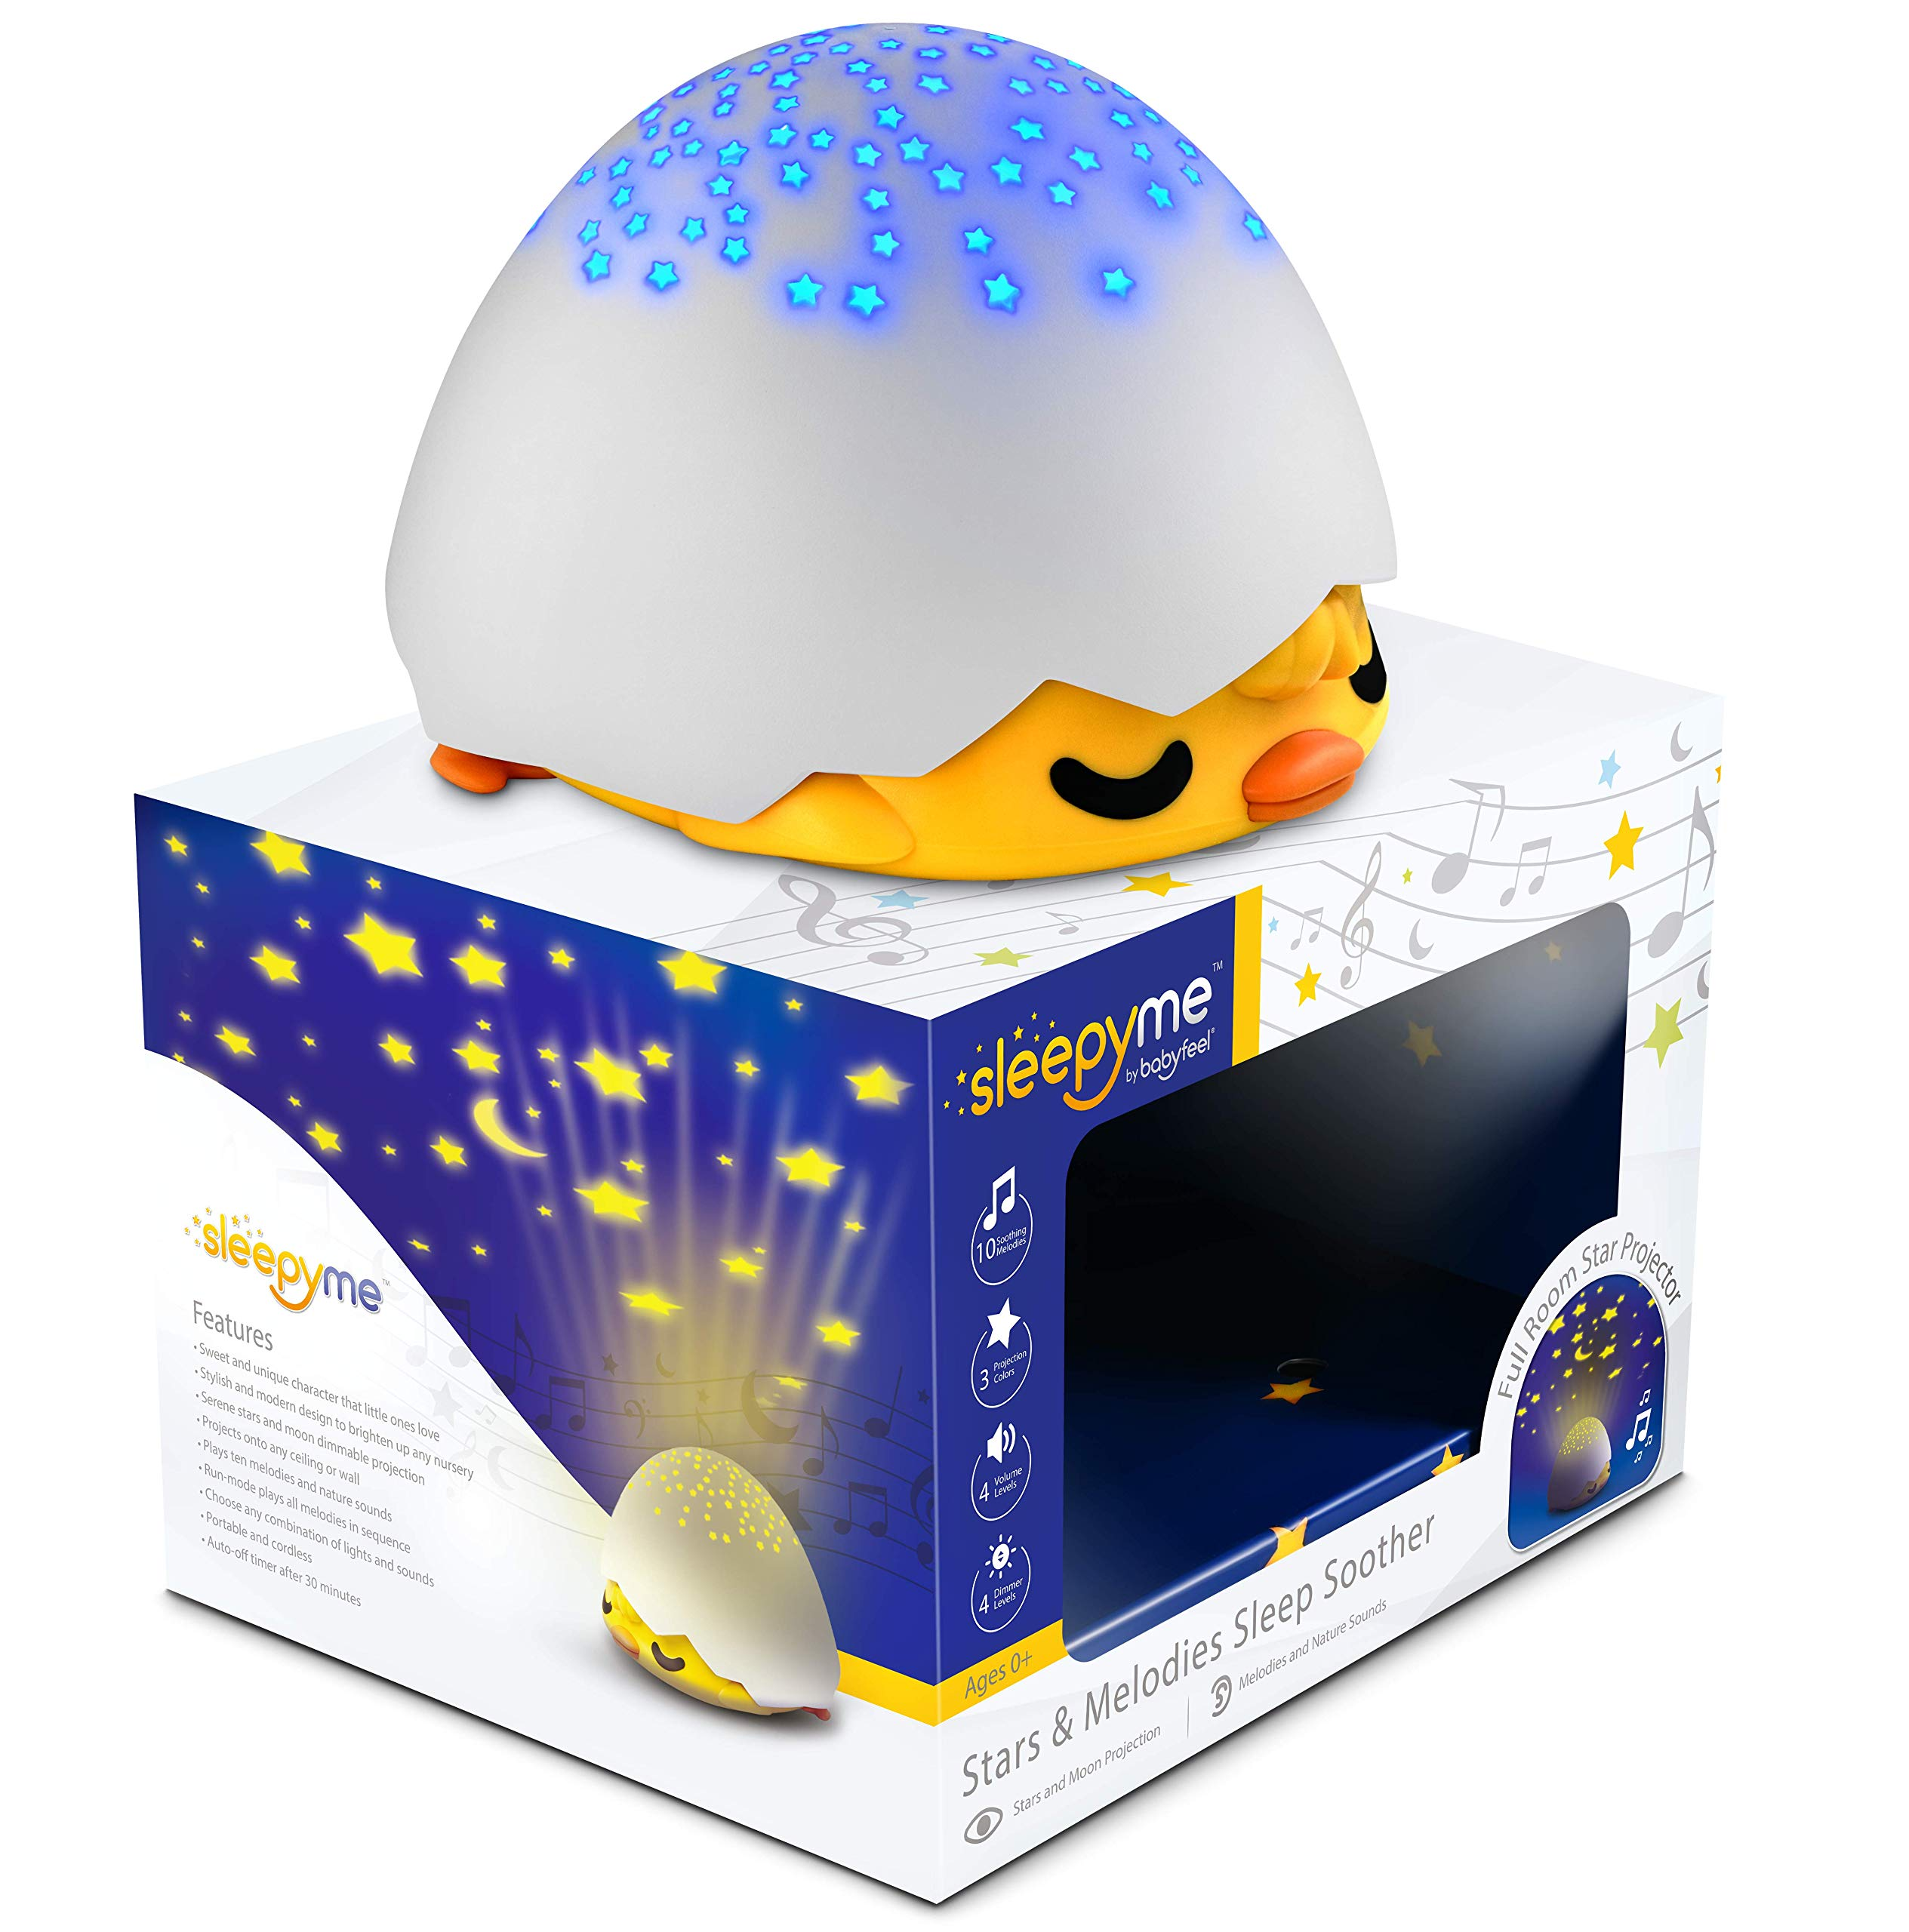 SleepyMe Smart Sleep Soother   Baby Star Projector   White Noise Sound Machine   Baby Gifts   Portable Sleep Aid Night Light with 10 Songs for Crib   Shusher Sound Machine from Birth to School